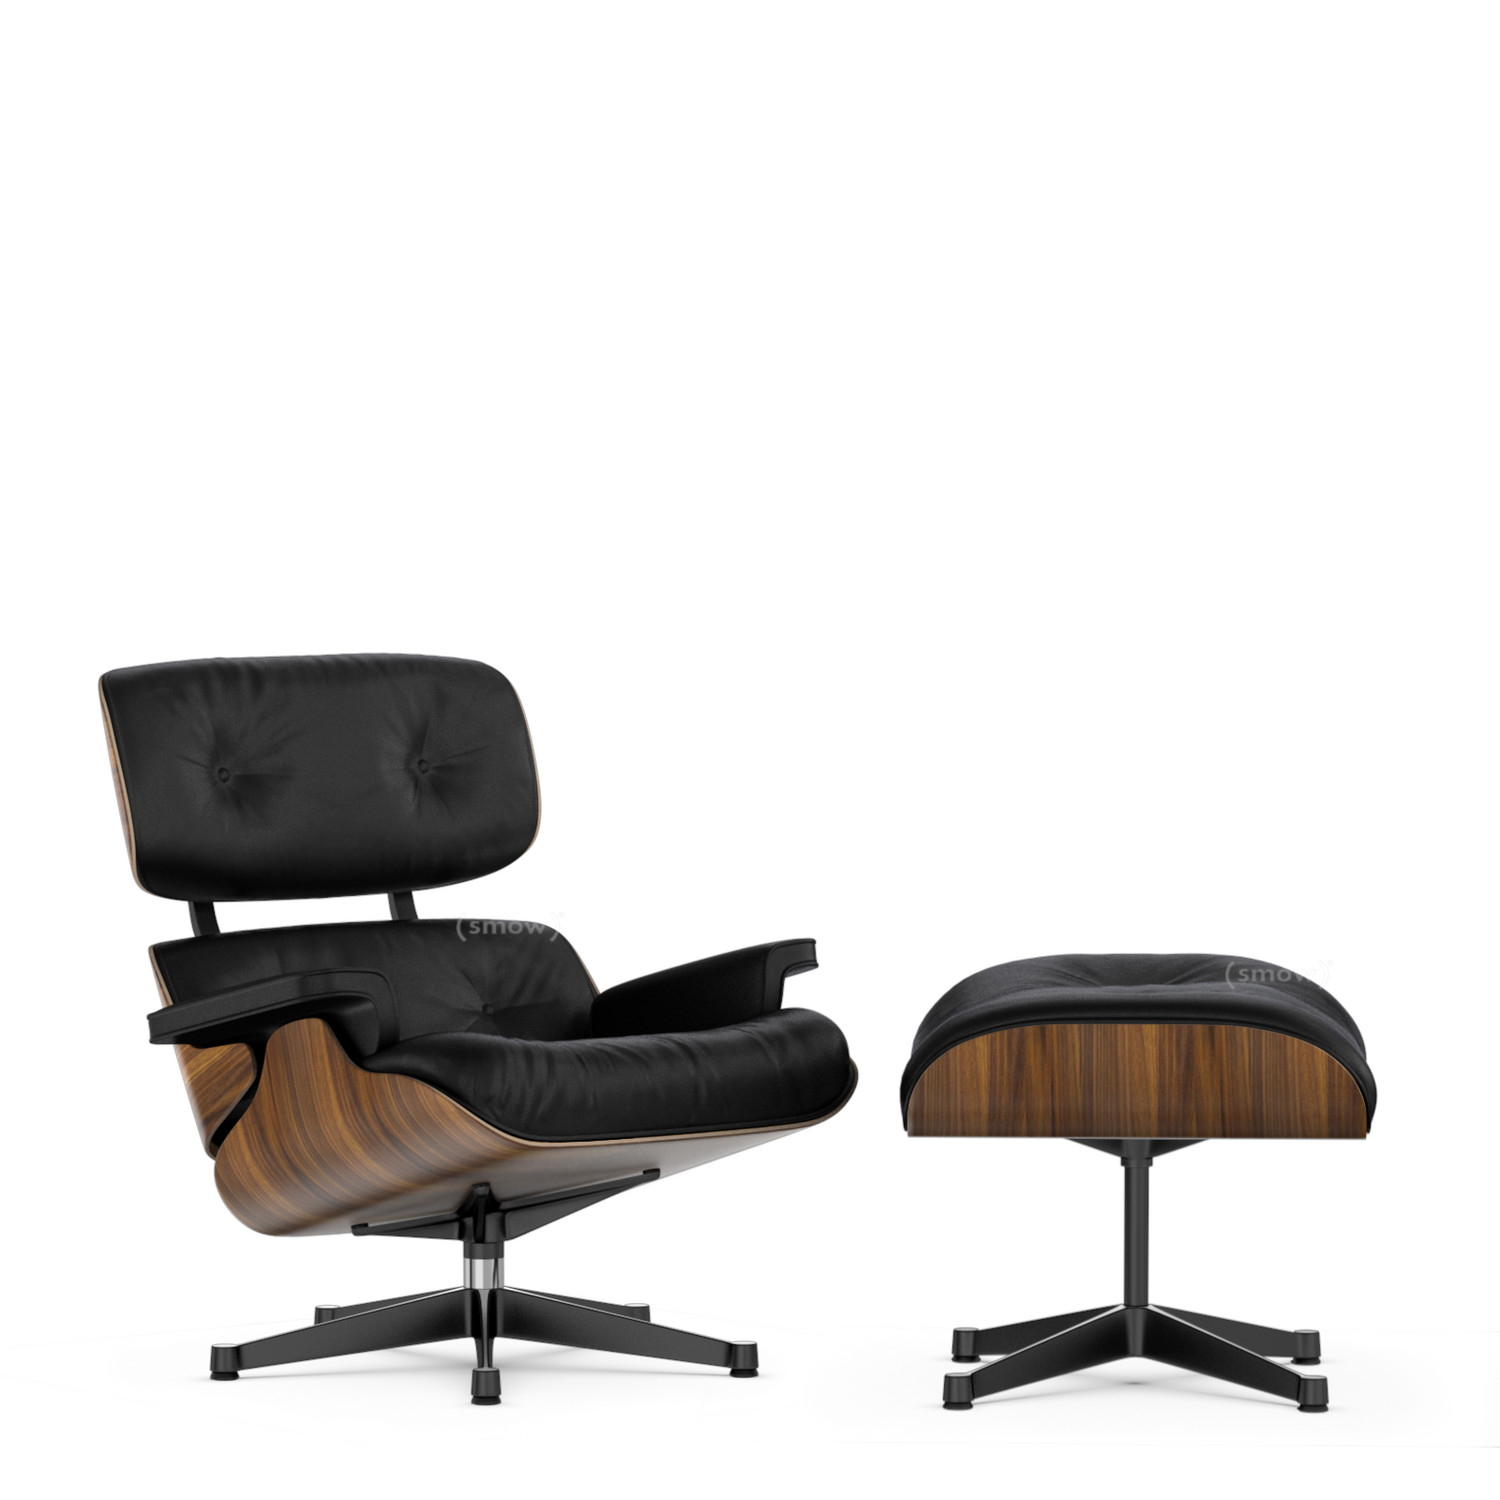 Charles eames lounge chair charles eames style medium for Eames chair vitra replica